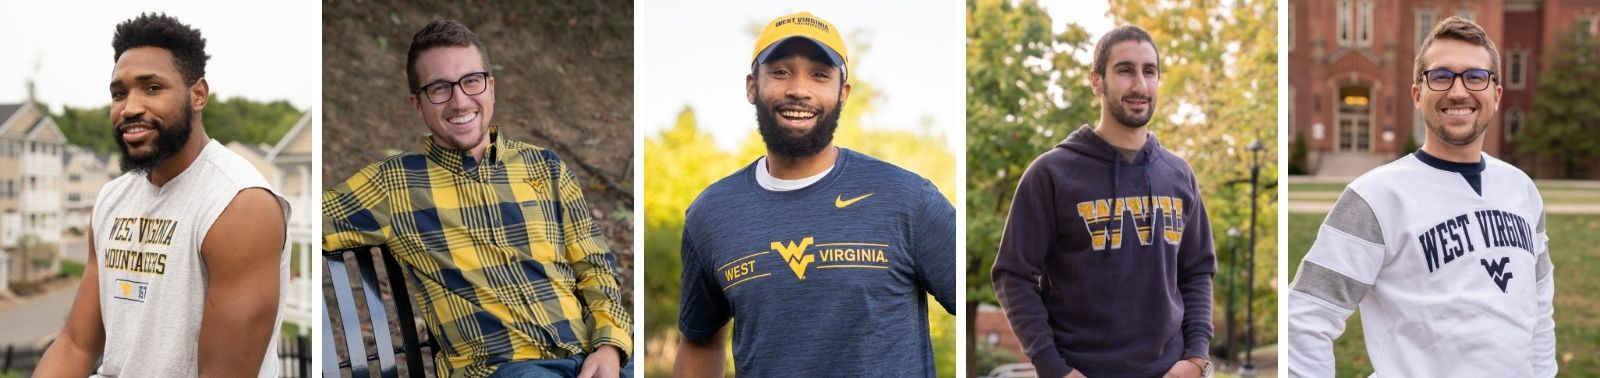 Men's WVU Sweatshirts & Hoodies